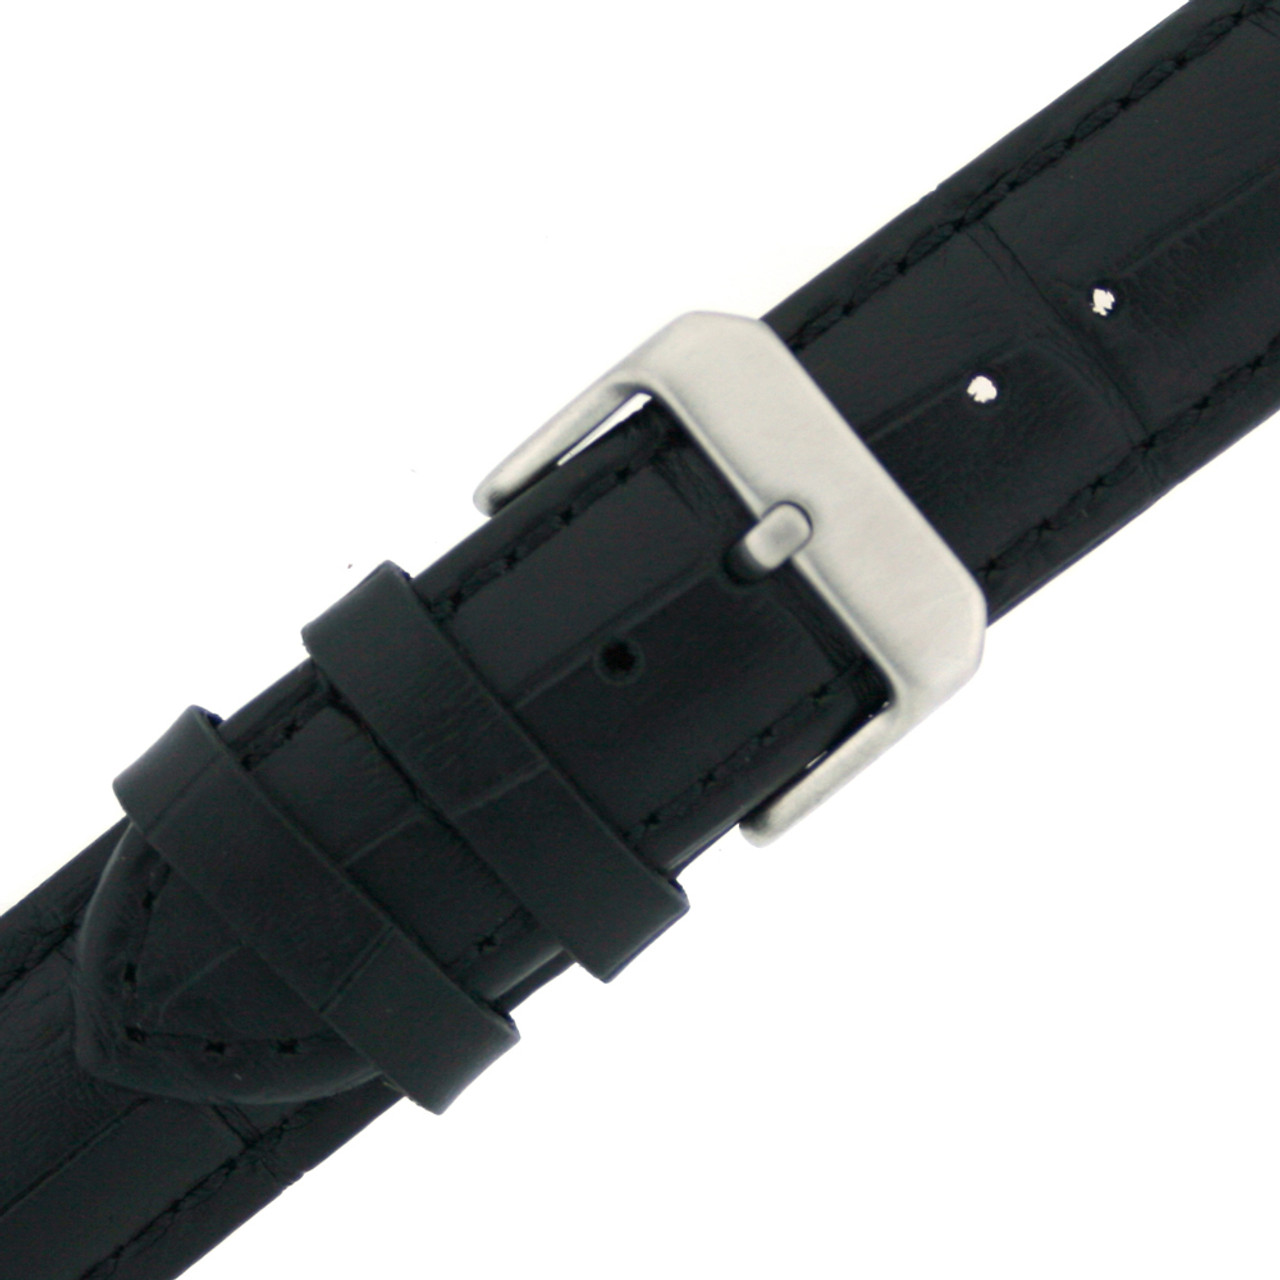 Leather Watch band by Tech Swiss in Black - Buckle View